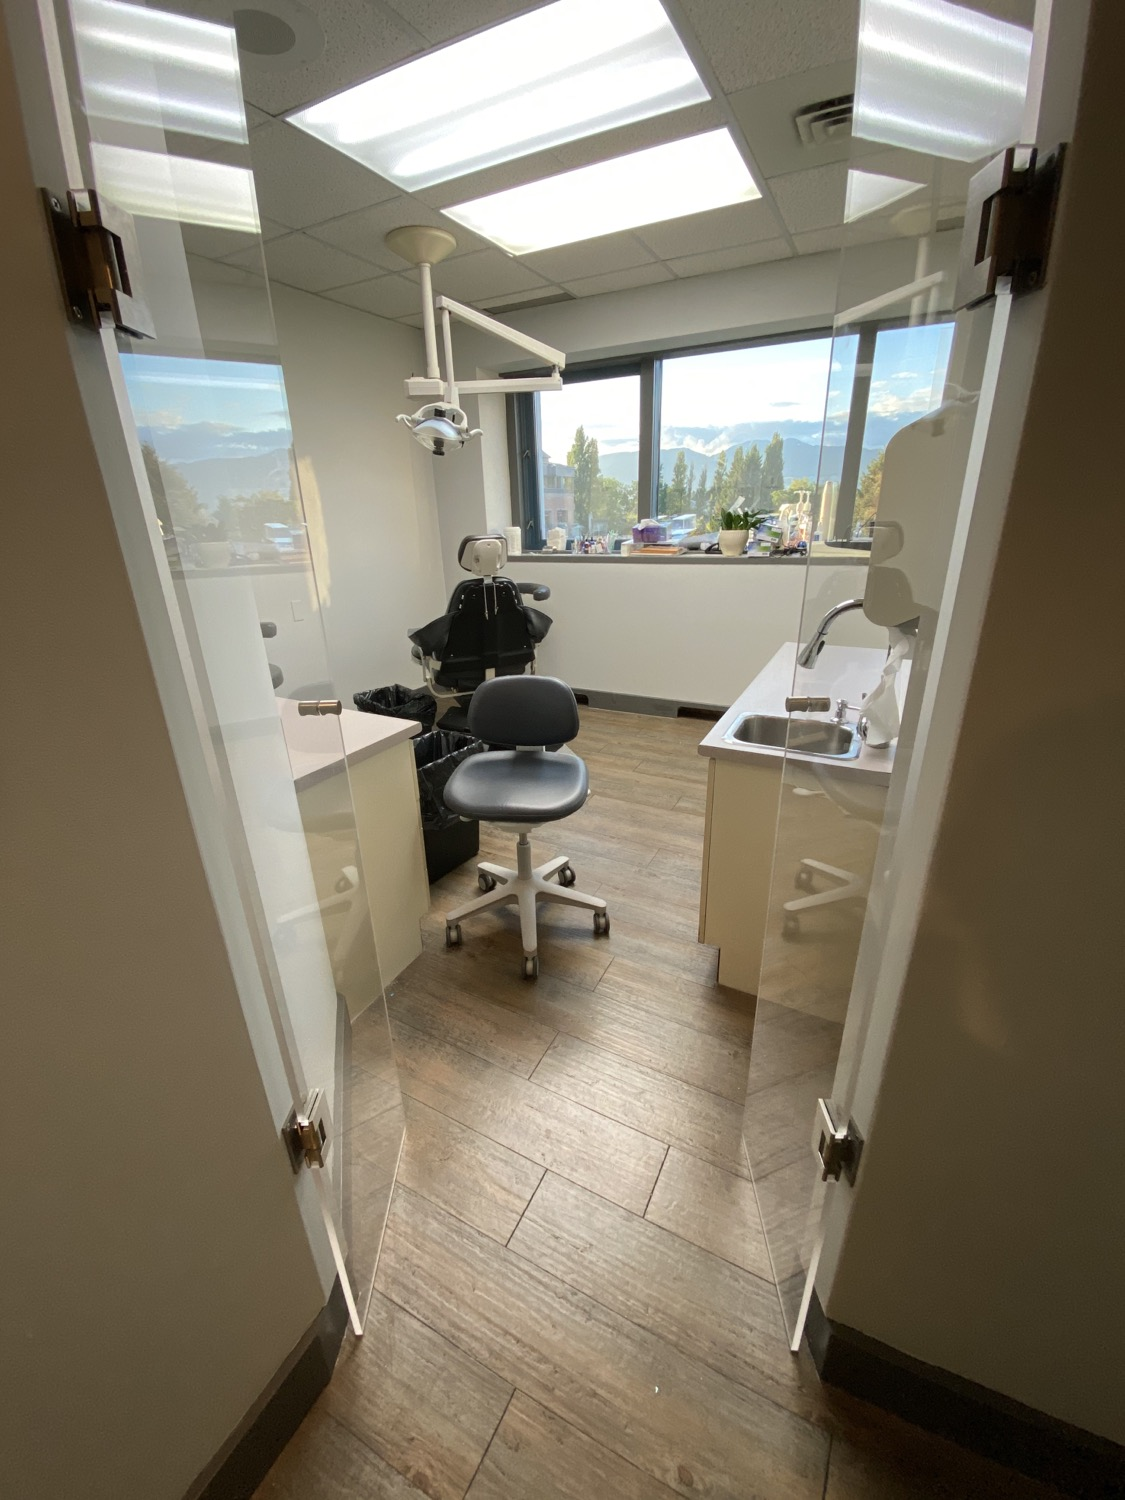 Dental office plexiglass enclosure